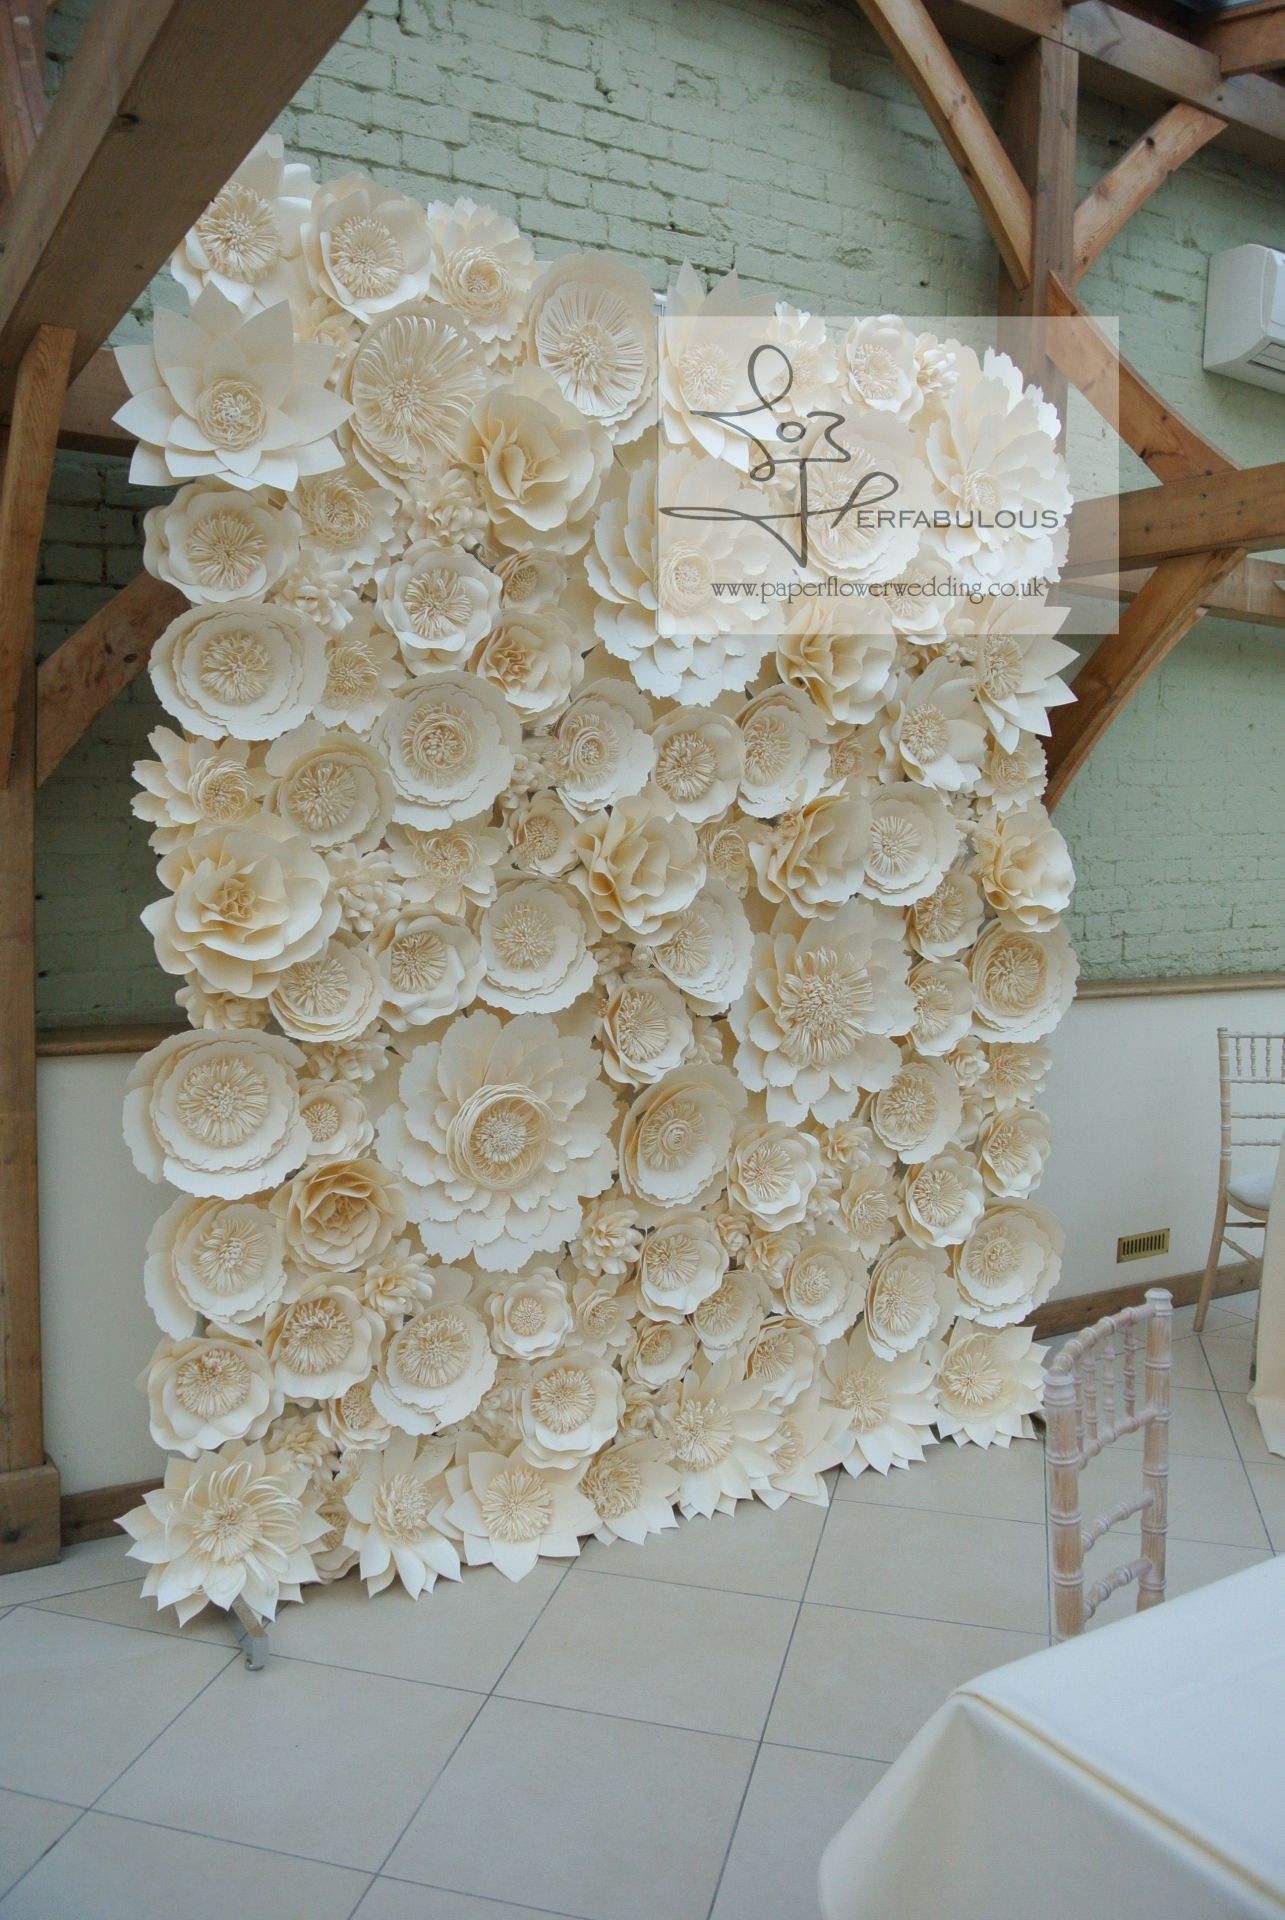 paper flowers backdrop hire, wedding backdrop, london wedding backdrop hire